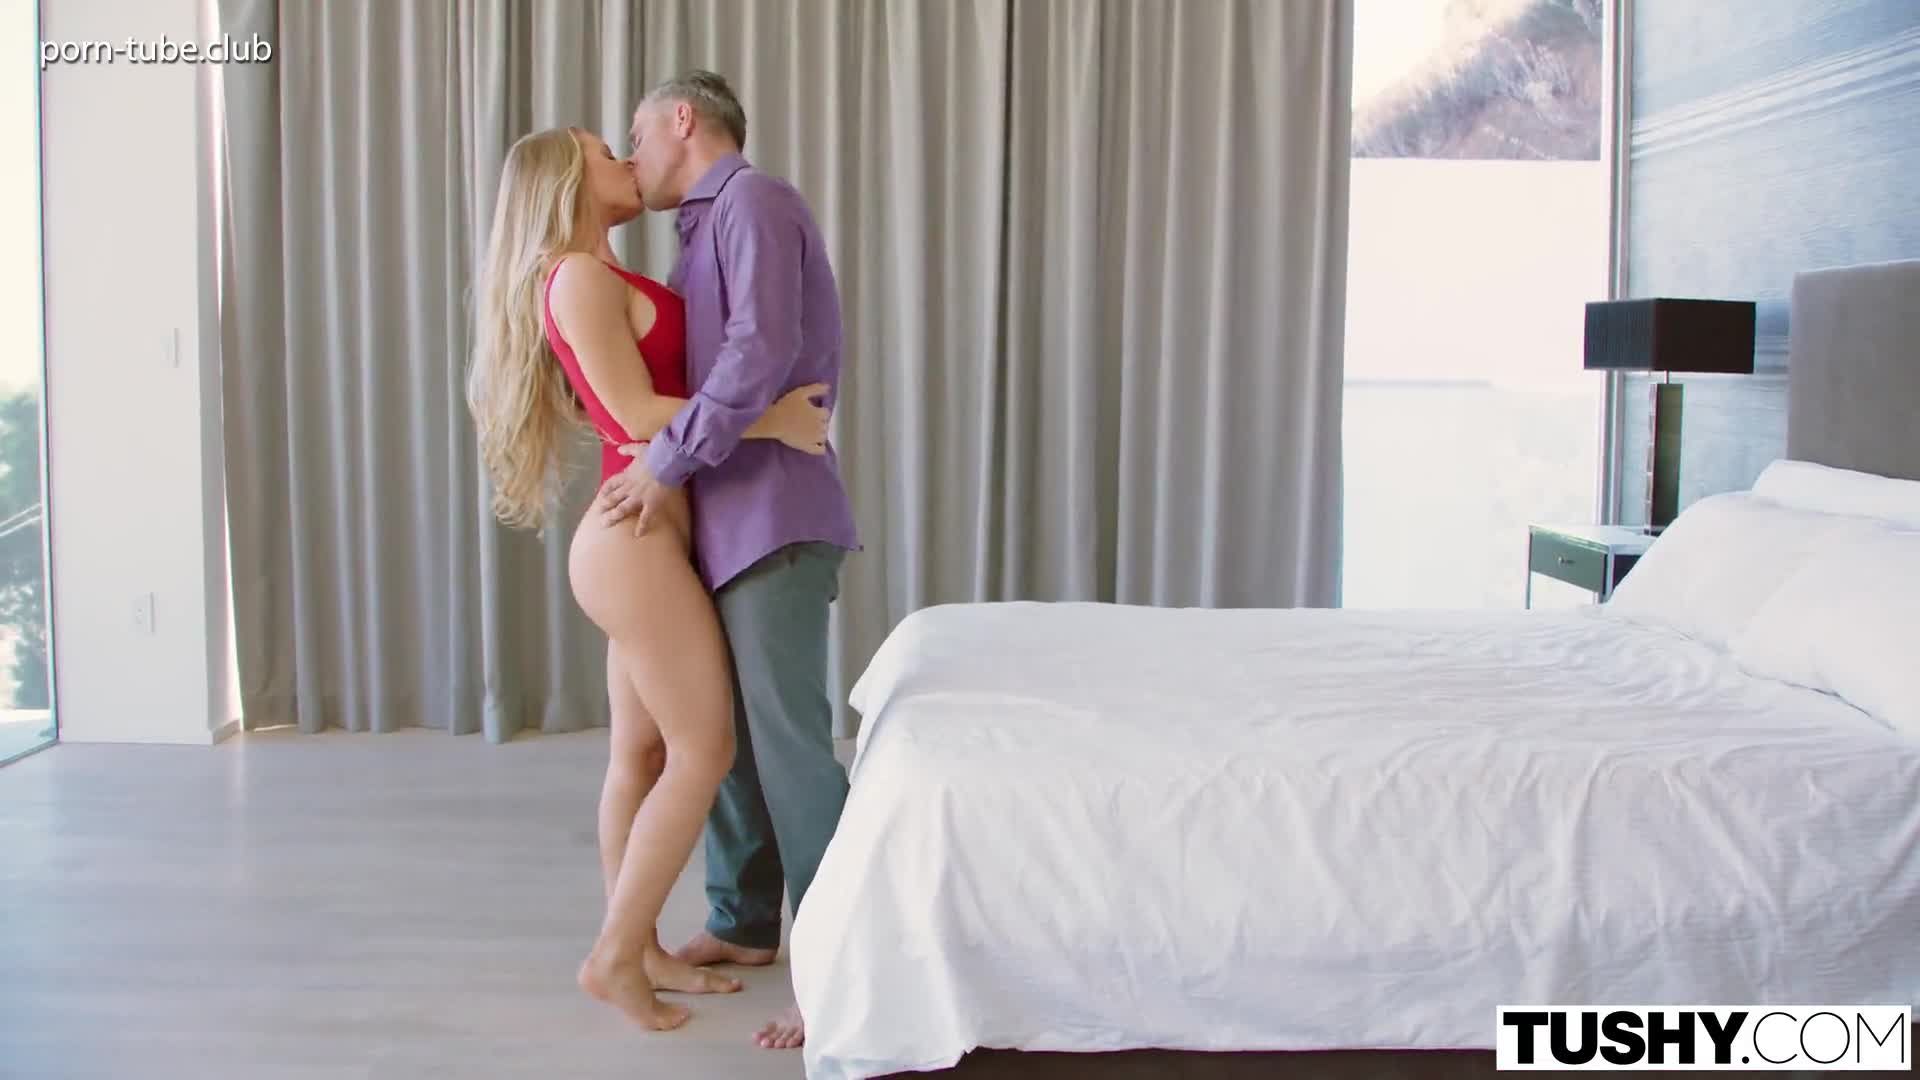 TUSHY 17.11.22 Nicole Aniston Anal On The First Date